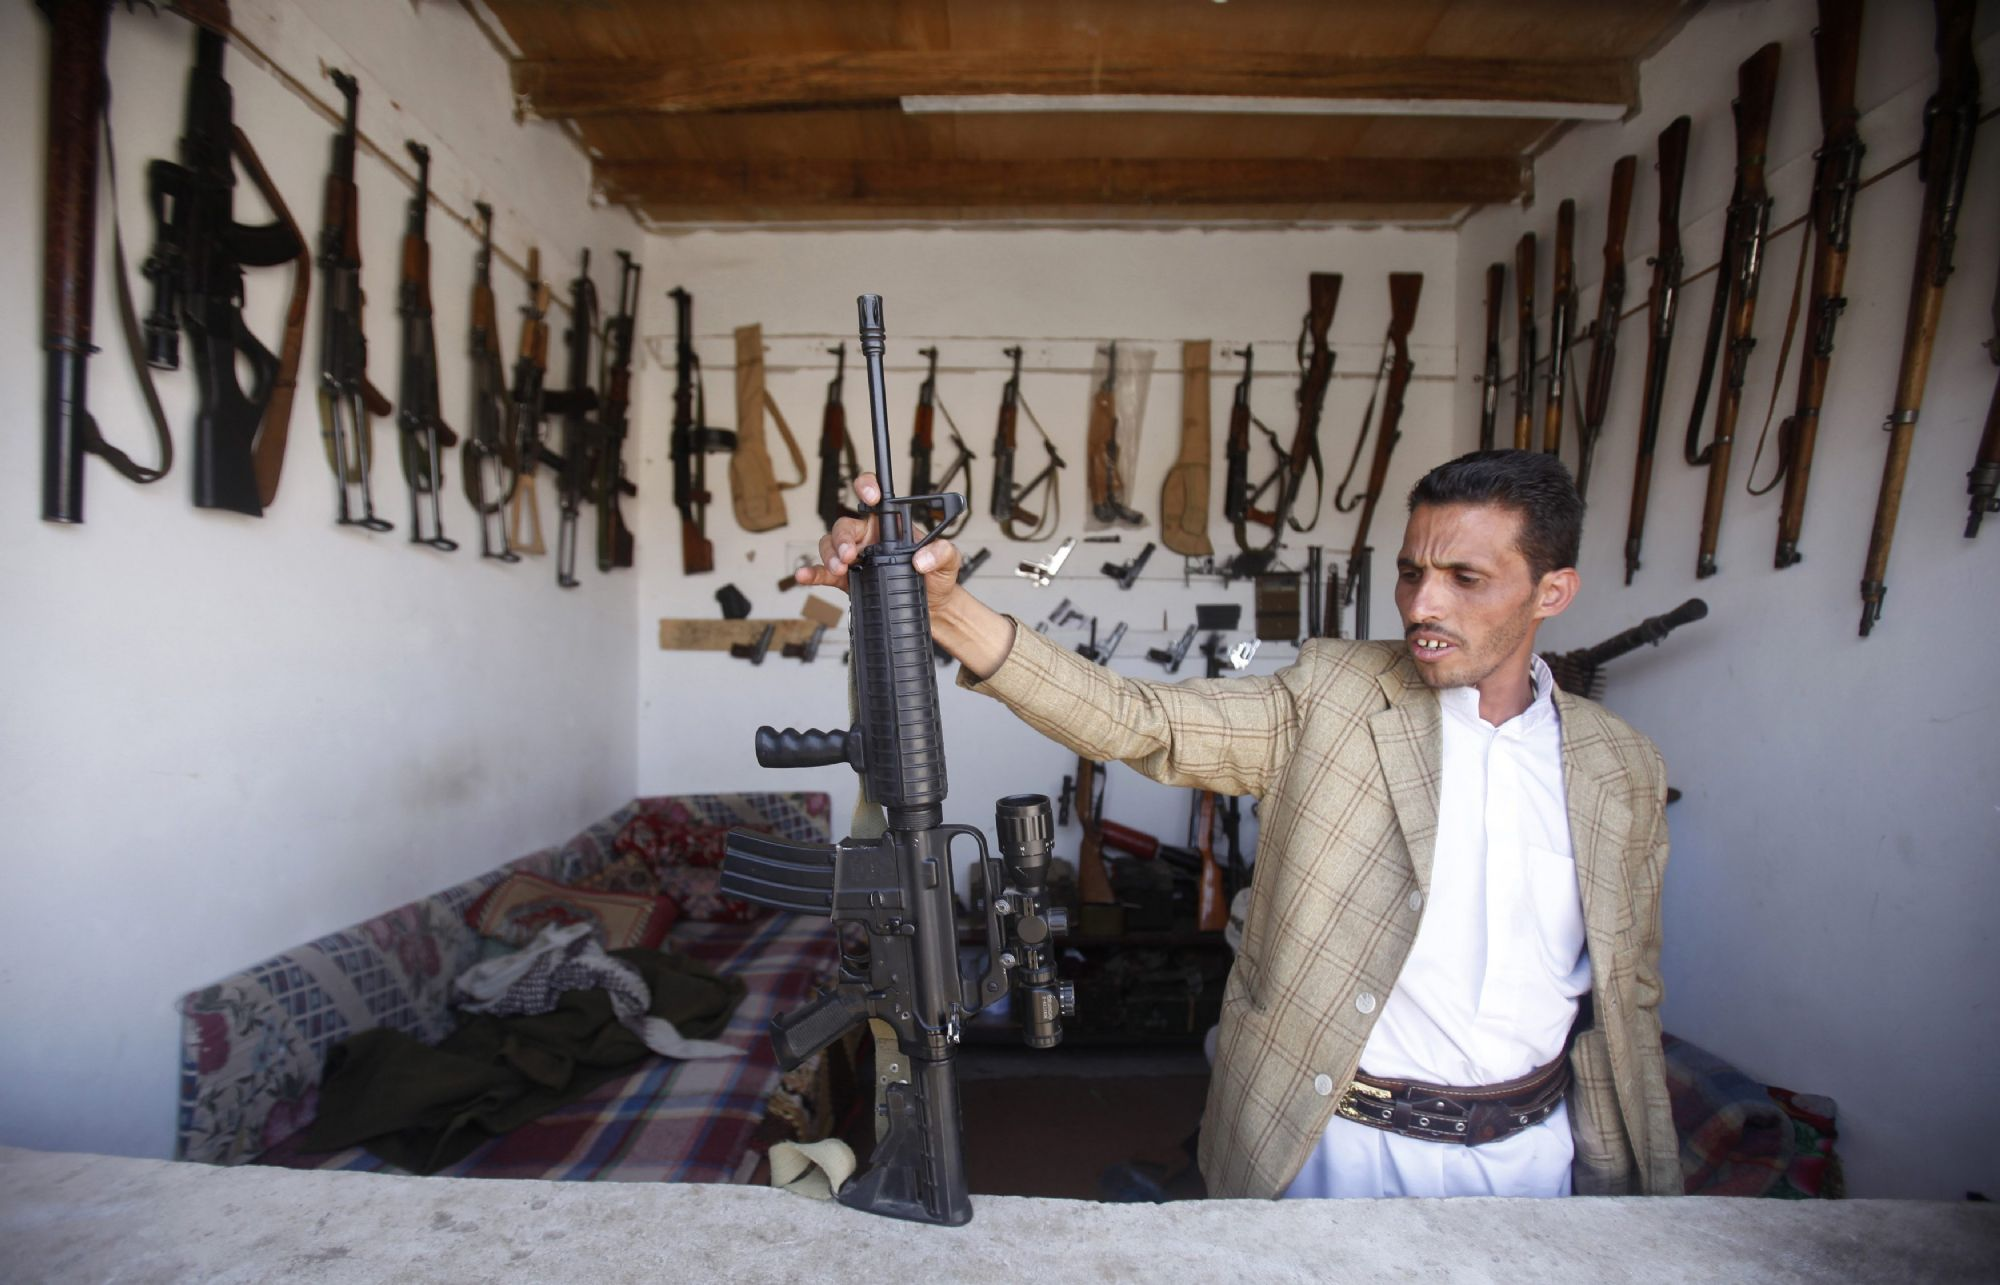 An arms dealer displays a rifle in his shop in Jihana, about 30km east of Sanaa. (Reuters)